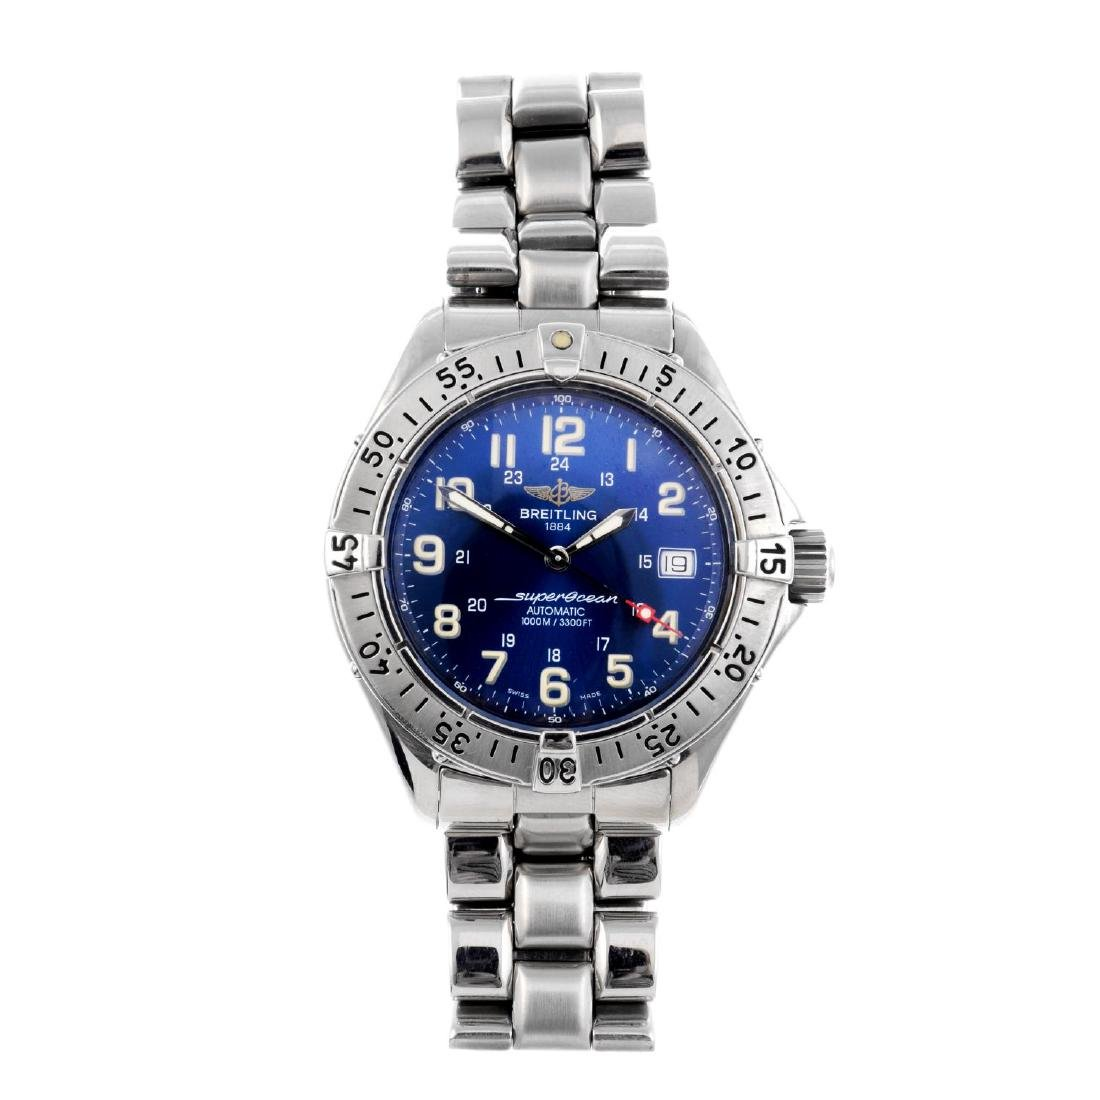 BREITLING - a gentleman's SuperOcean bracelet watch.